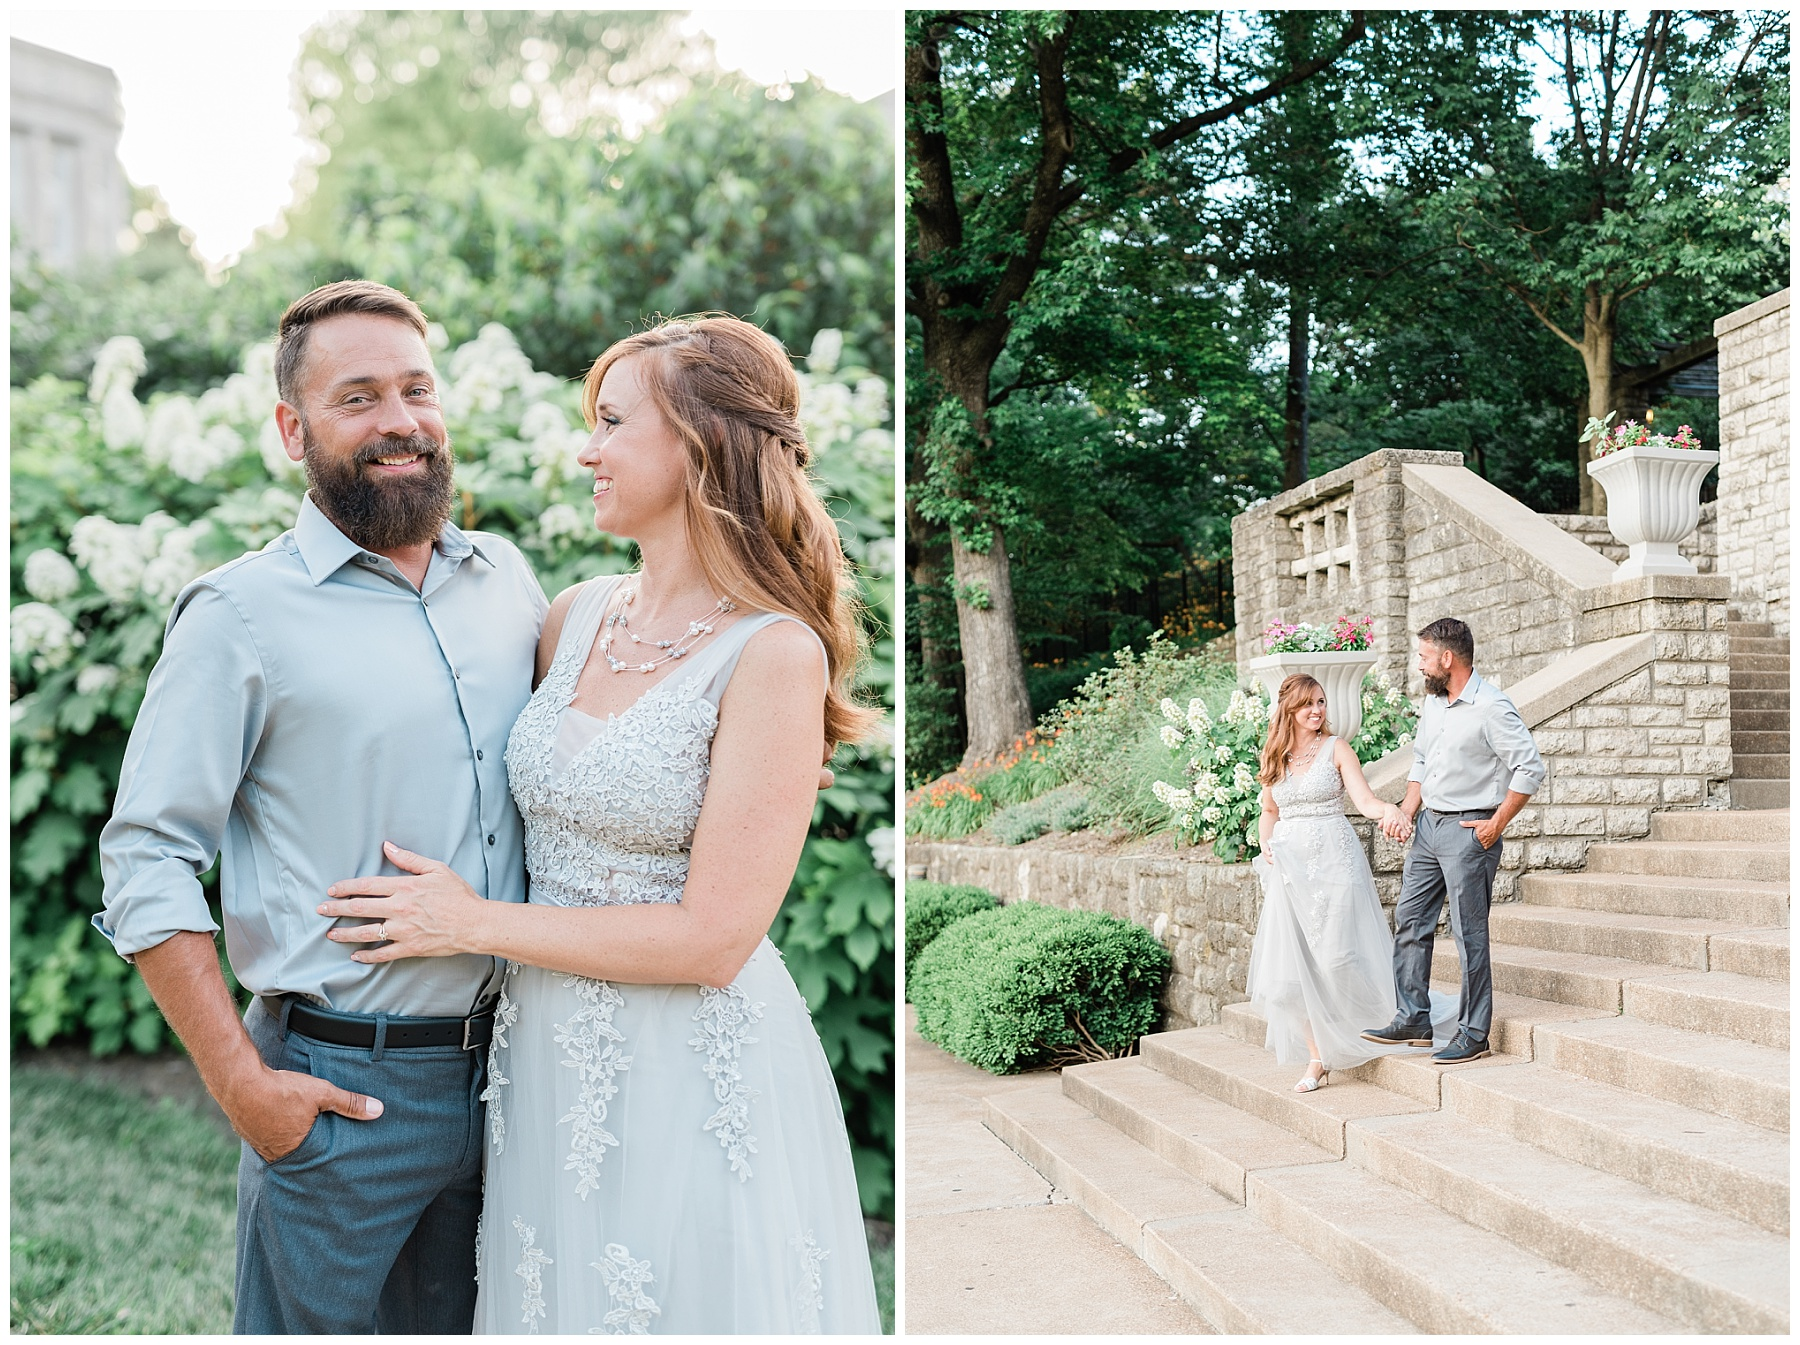 Chuck and Julie 25th Anniversary in Silver at Missouri Governor's Gardens by Kelsi Kliethermes Photography_0003.jpg